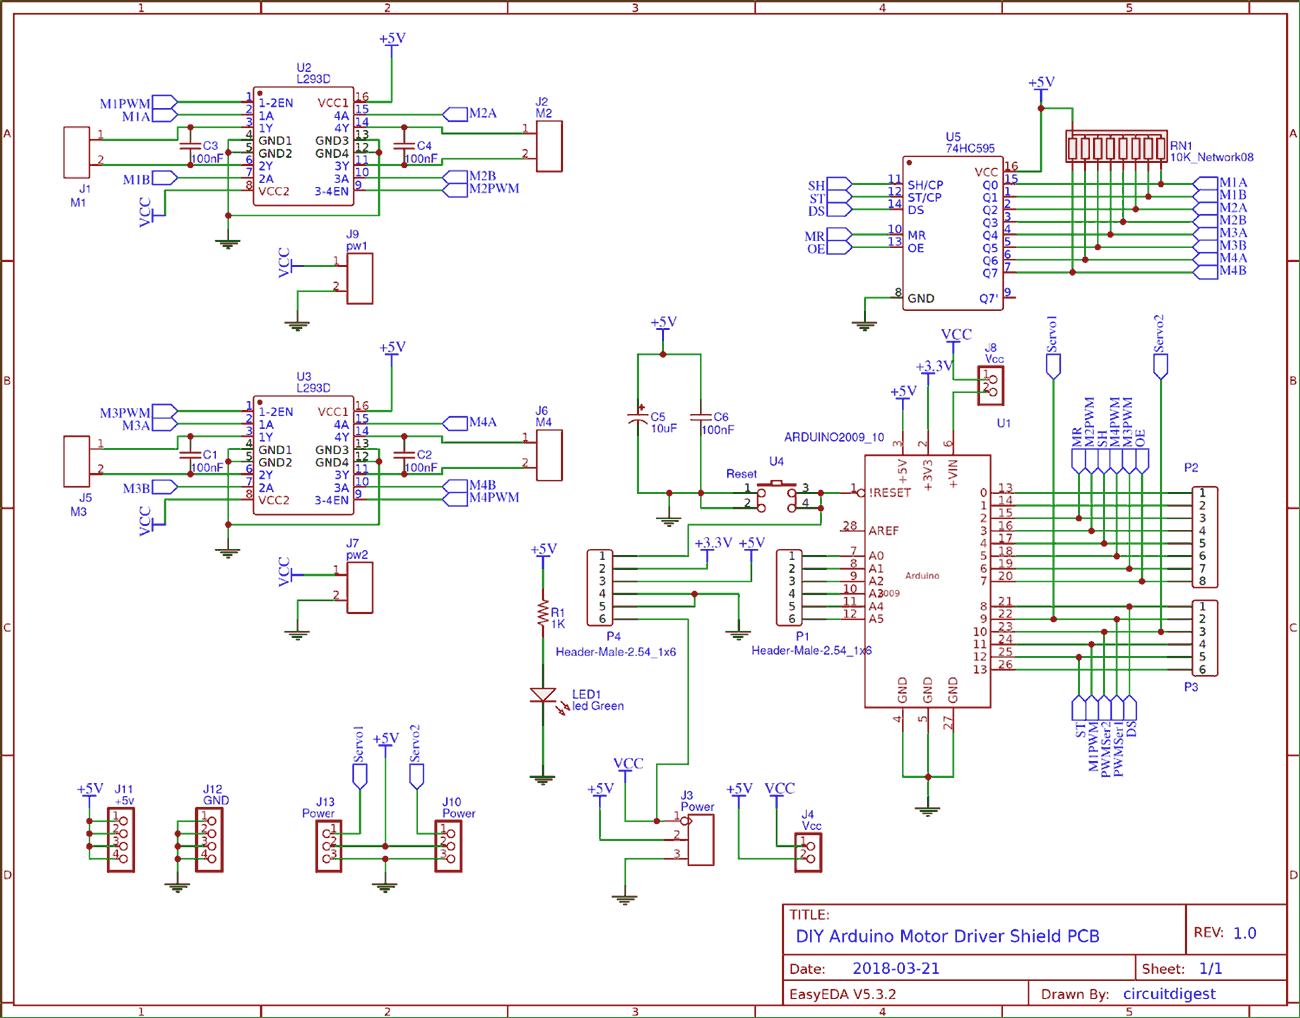 medium resolution of circuit diagram for diy arduino motor driver shield pcb